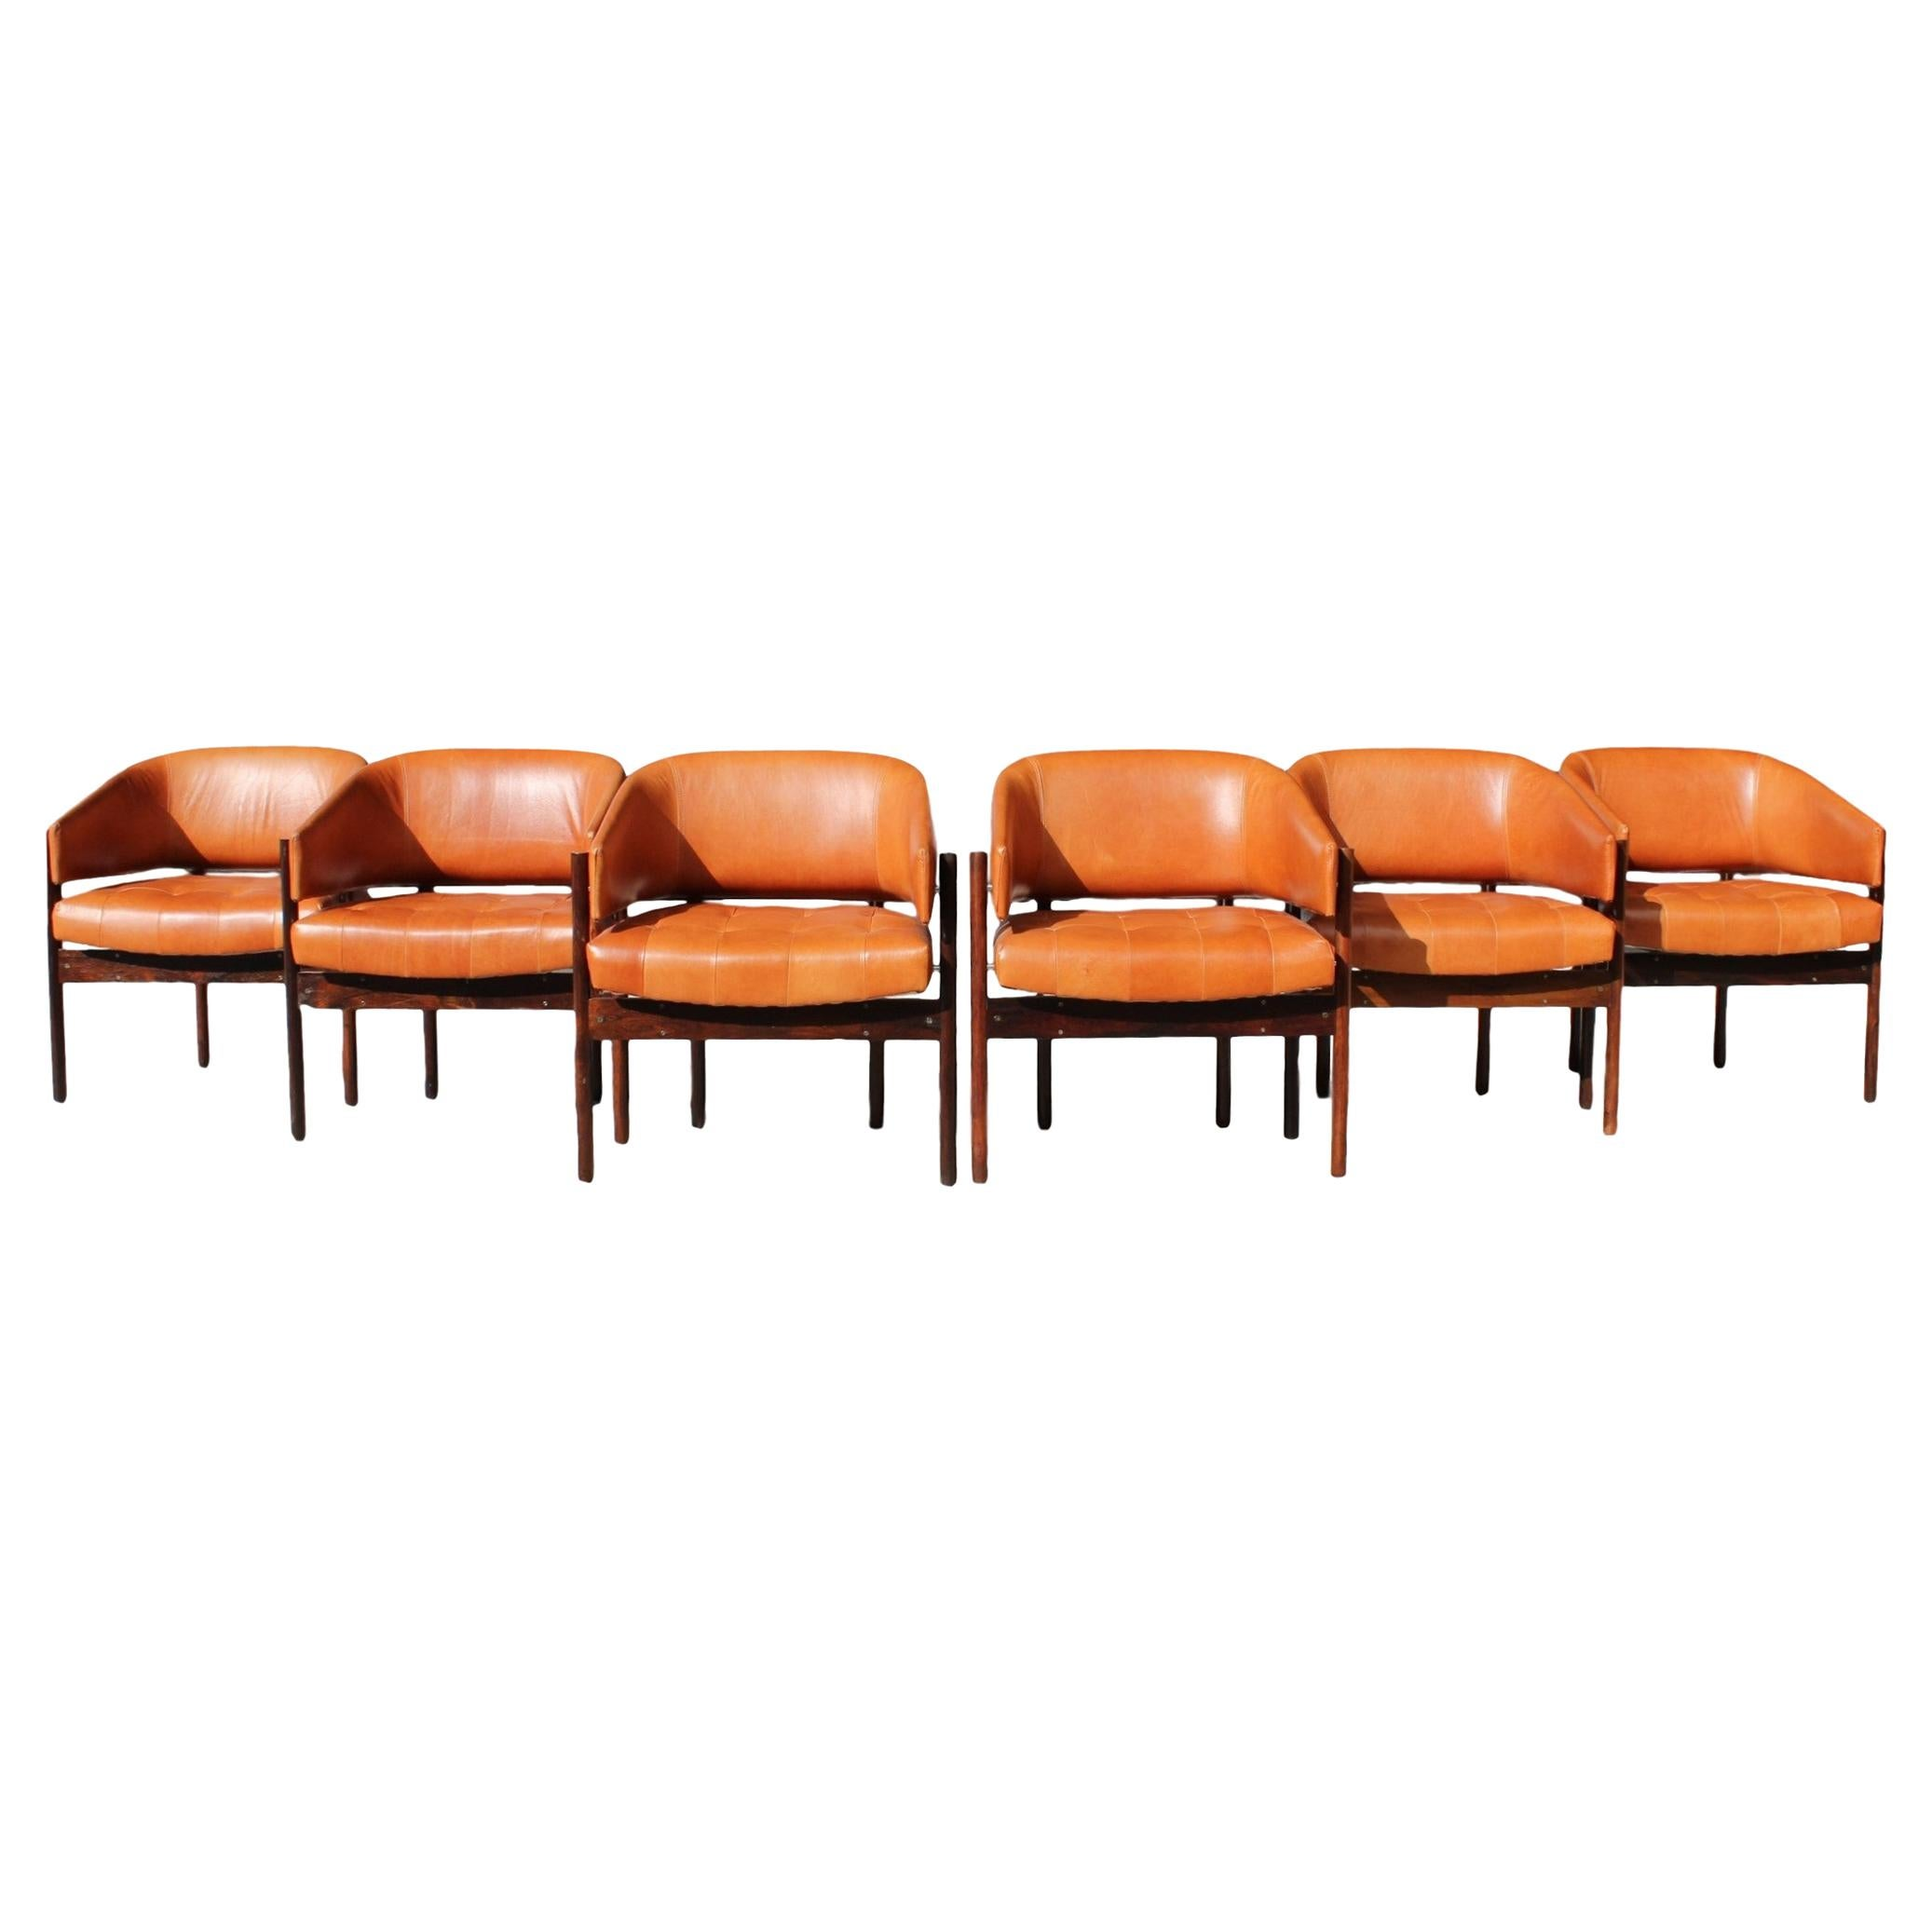 """Jorge Zalszupin for L'Atelier """"Senior"""" Armchairs Rosewood and Leather 60's."""